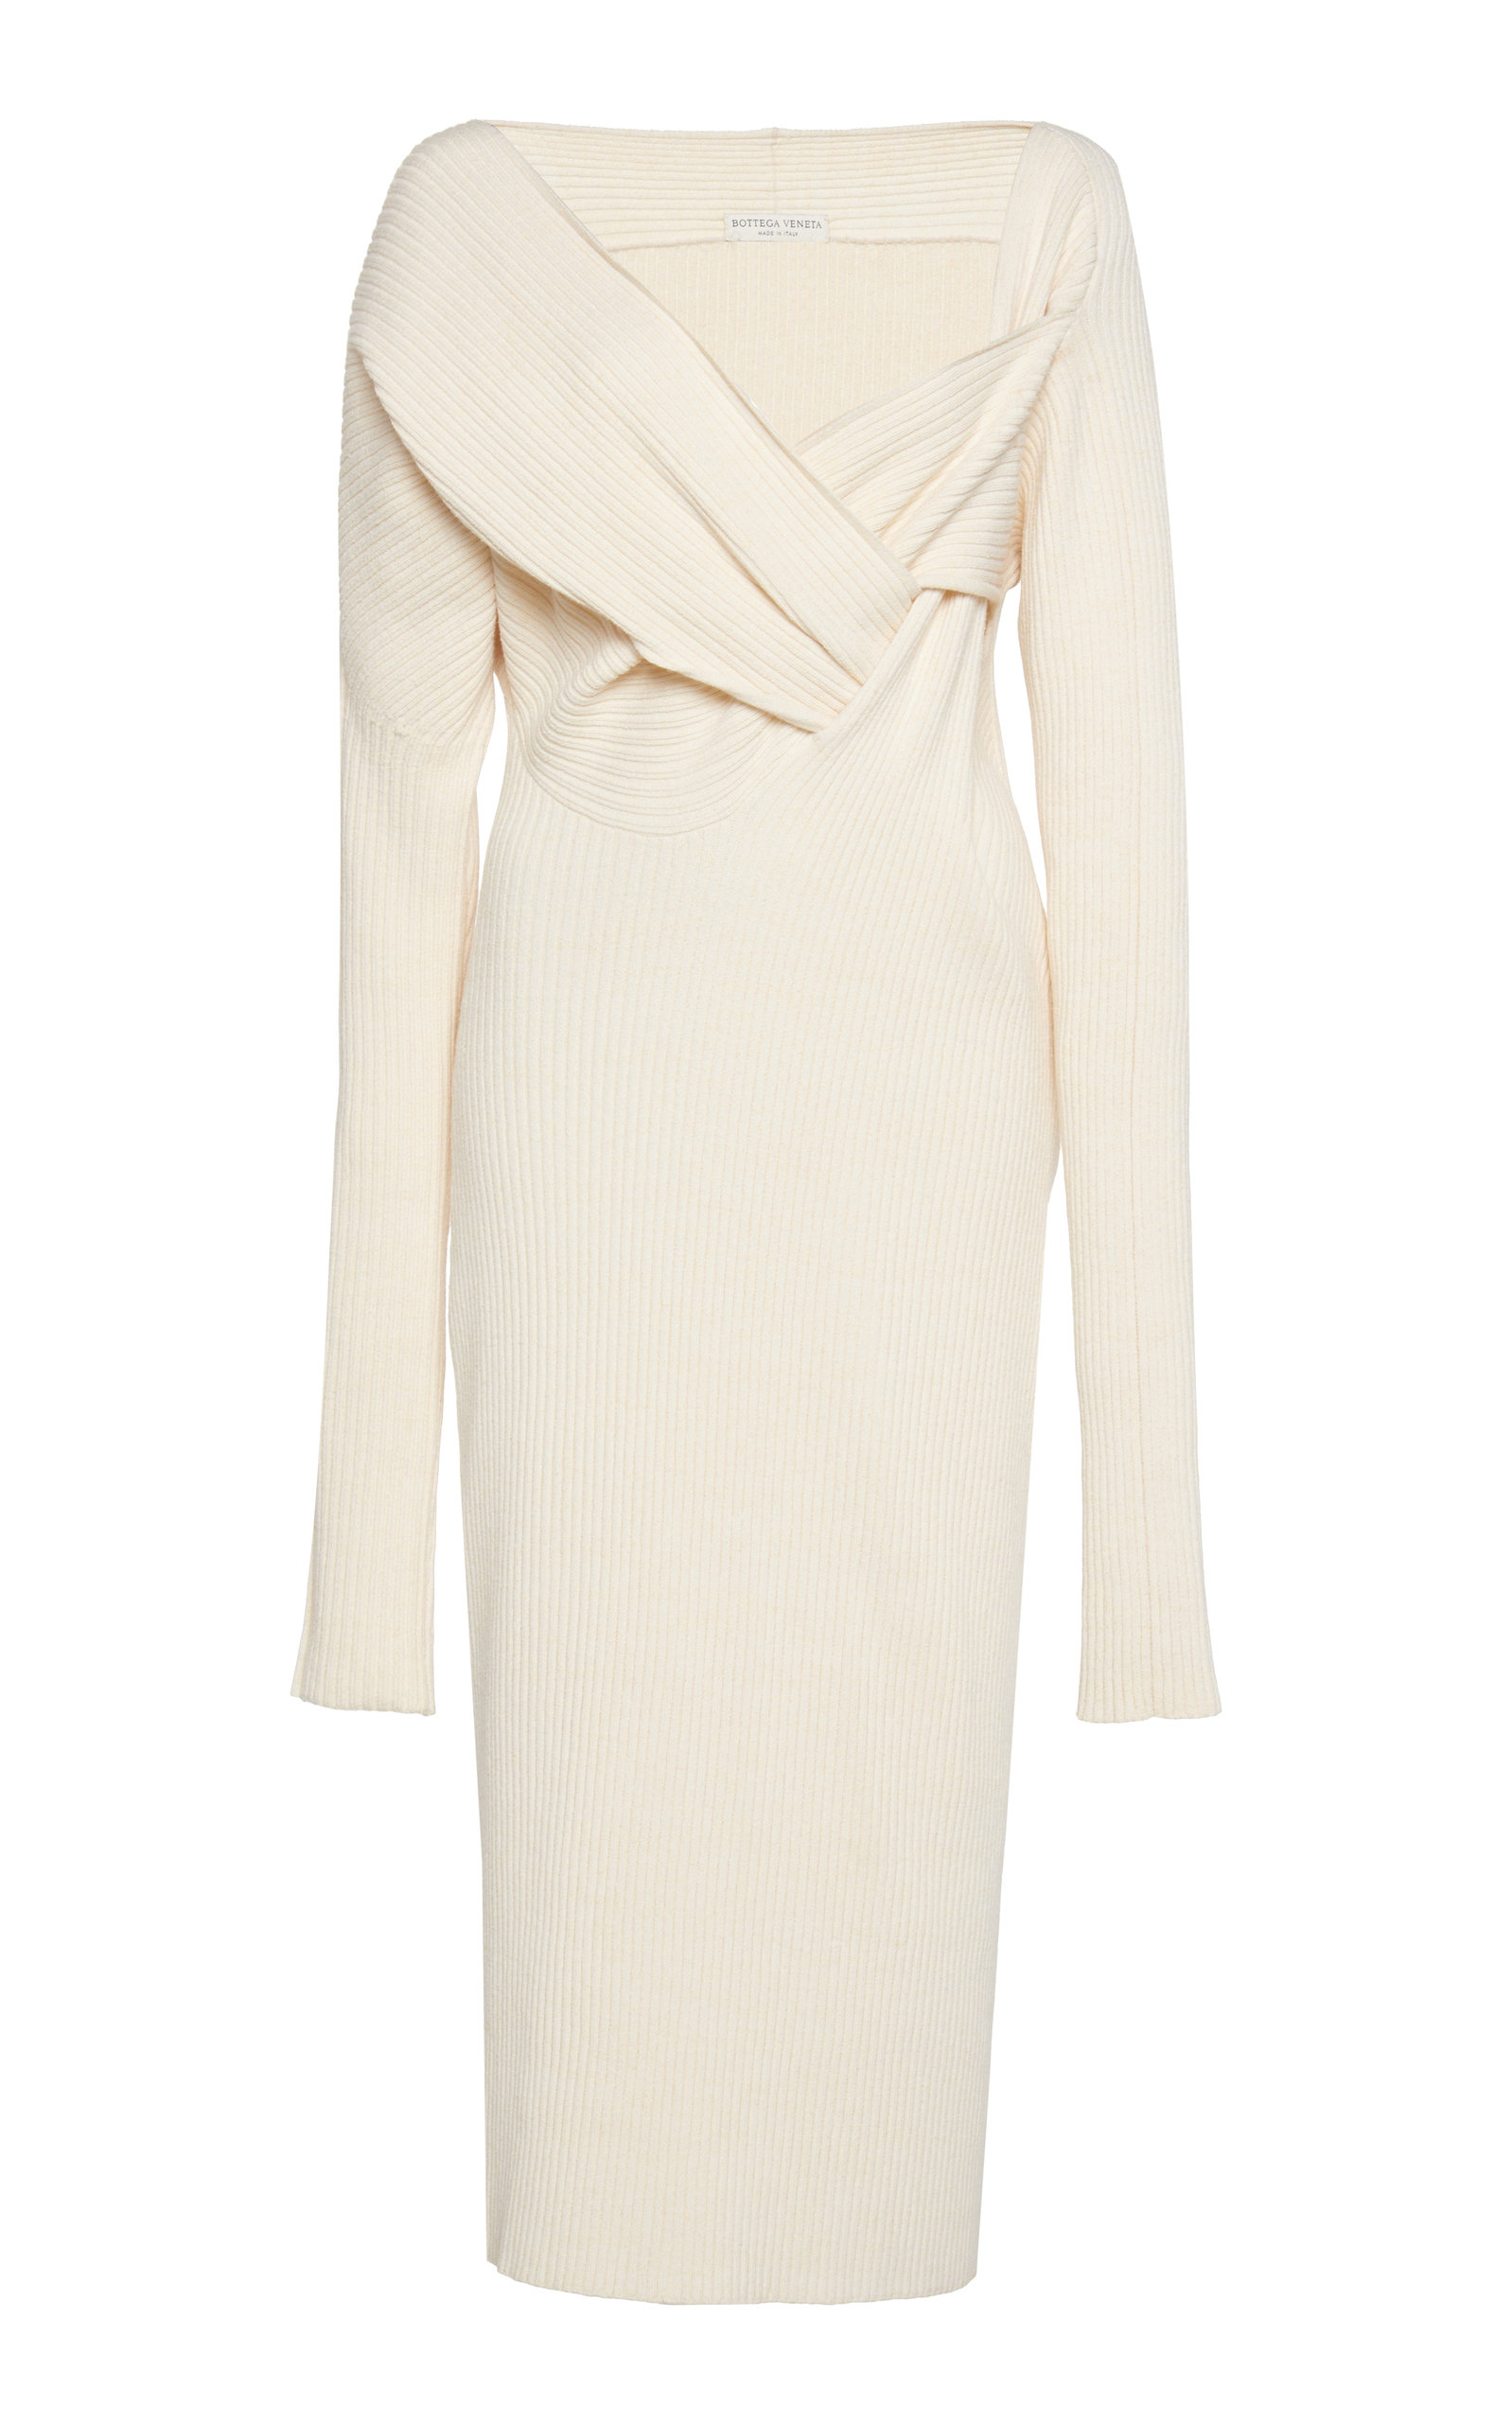 Buy Bottega Veneta Asymmetric Draped Knitted Midi Dress online, shop Bottega Veneta at the best price